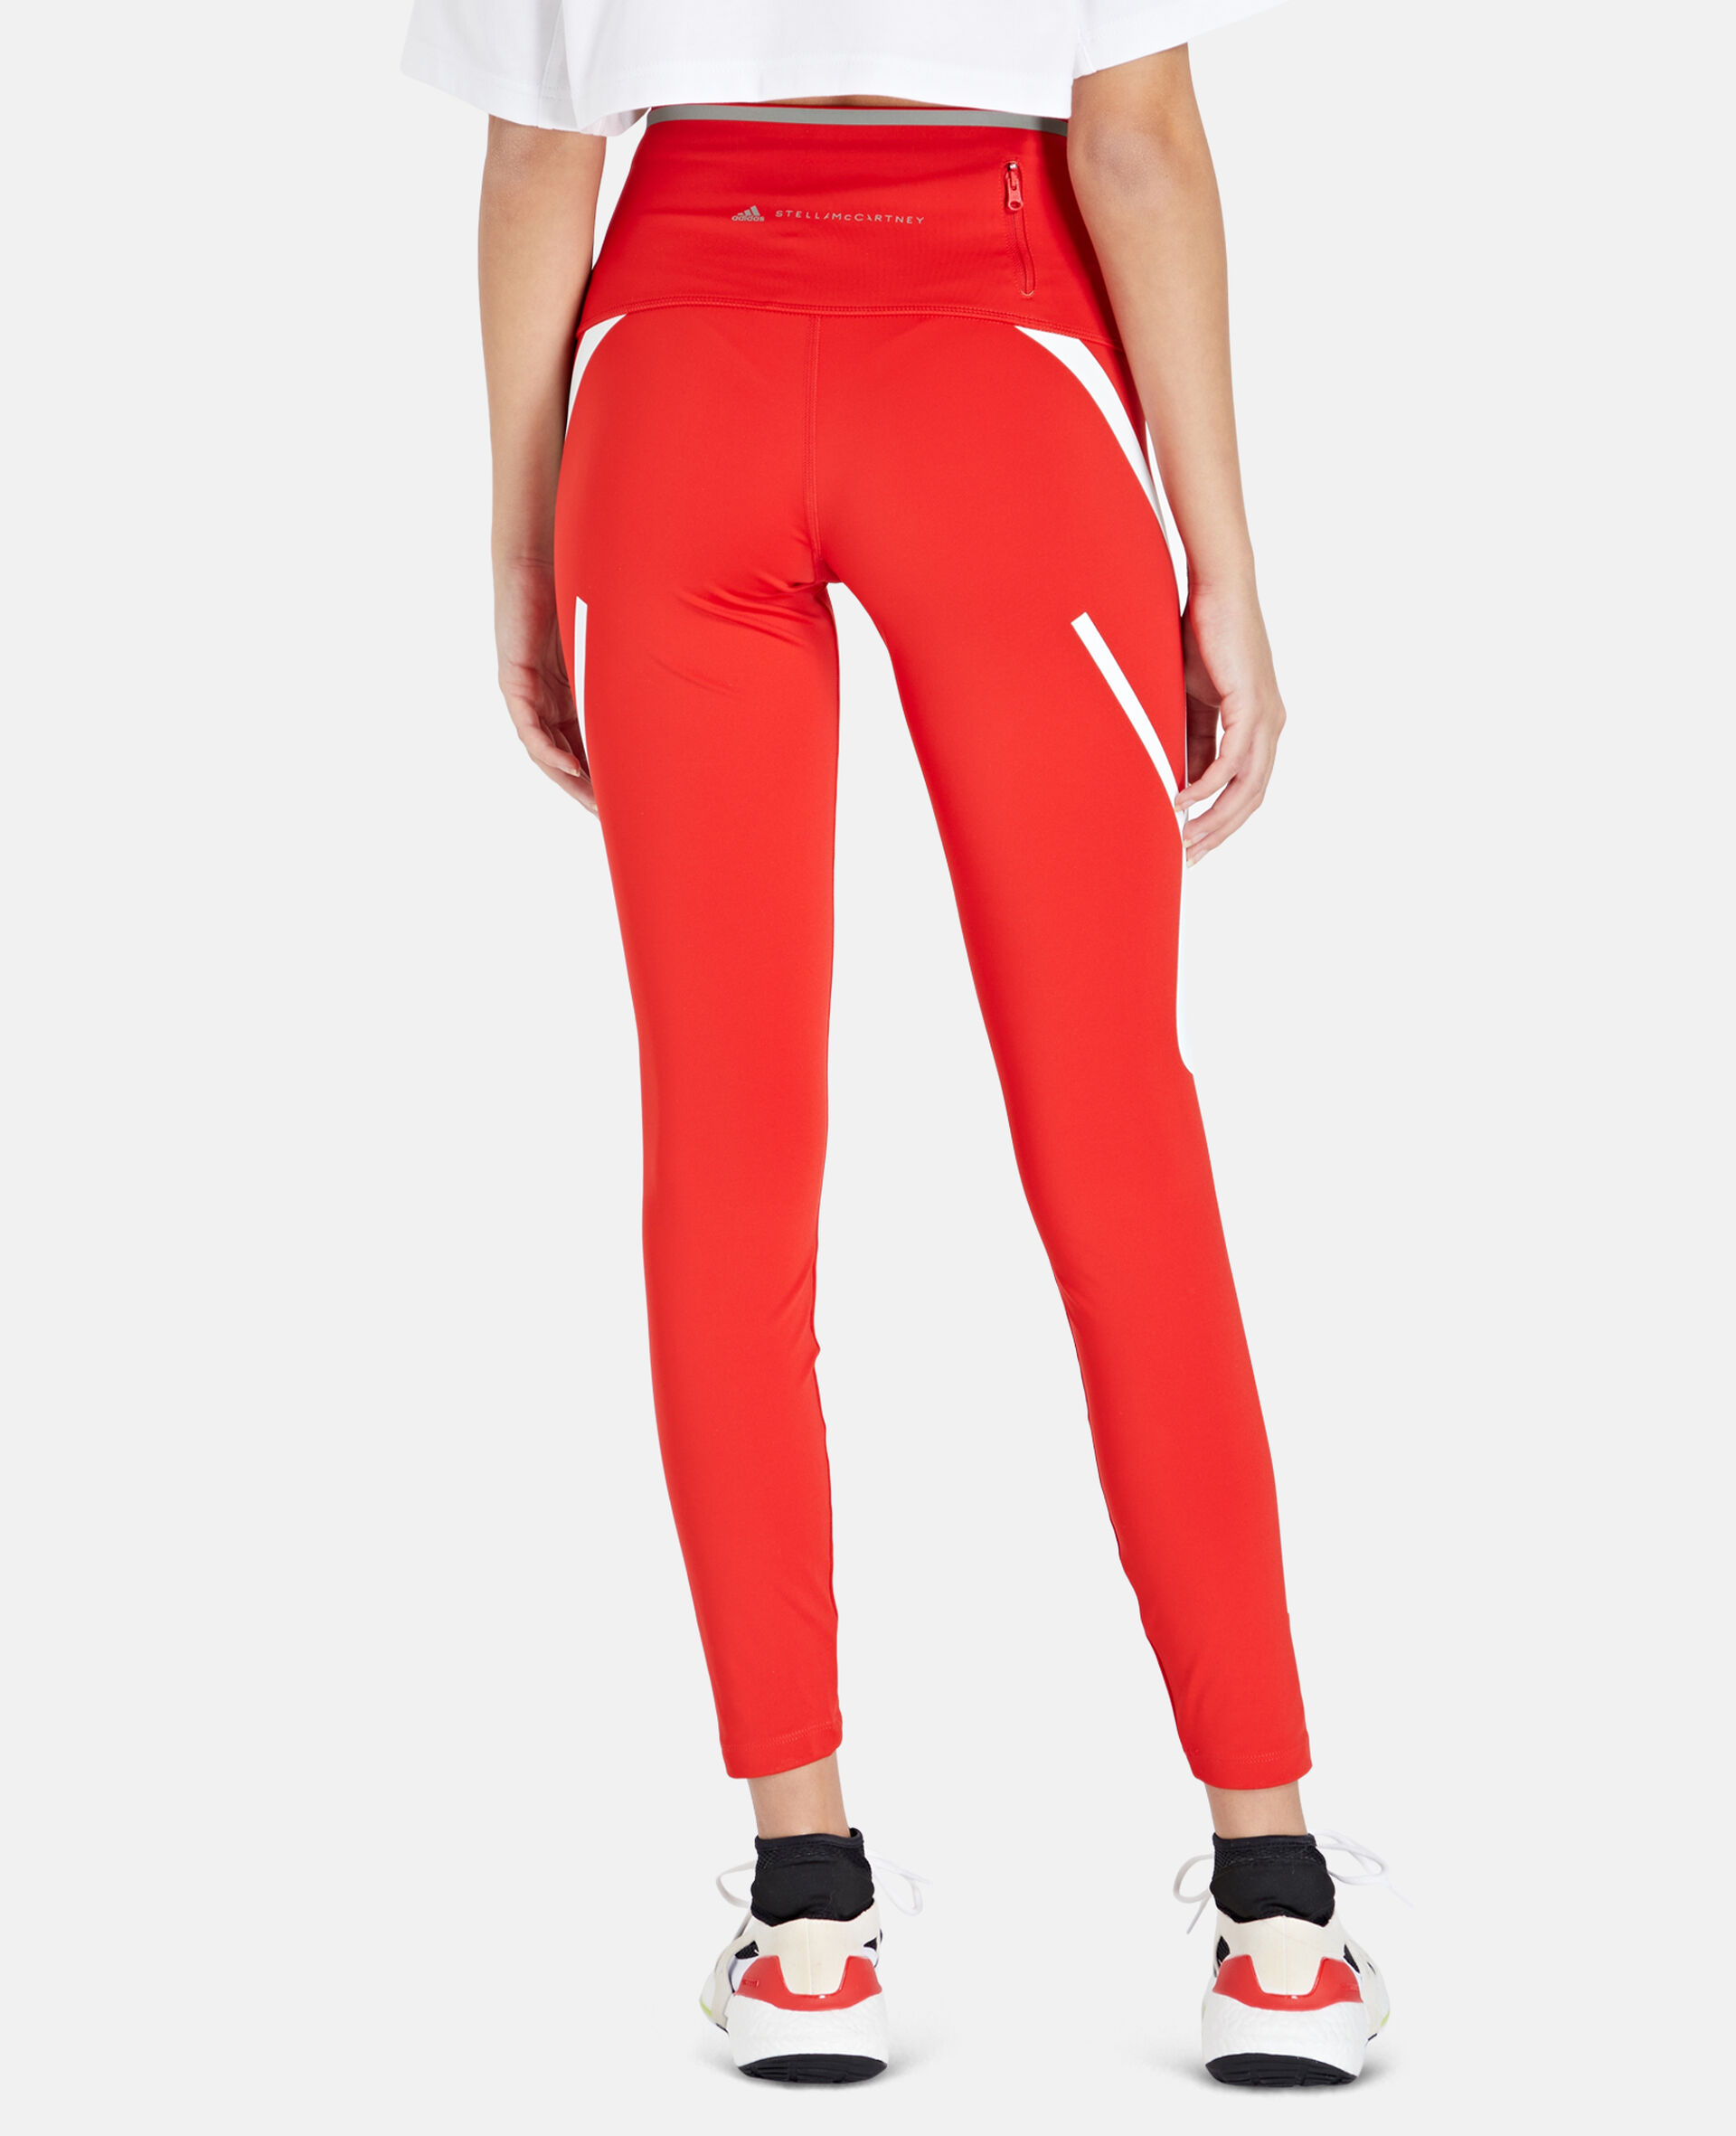 TruePace Long Running Tights-Red-large image number 2